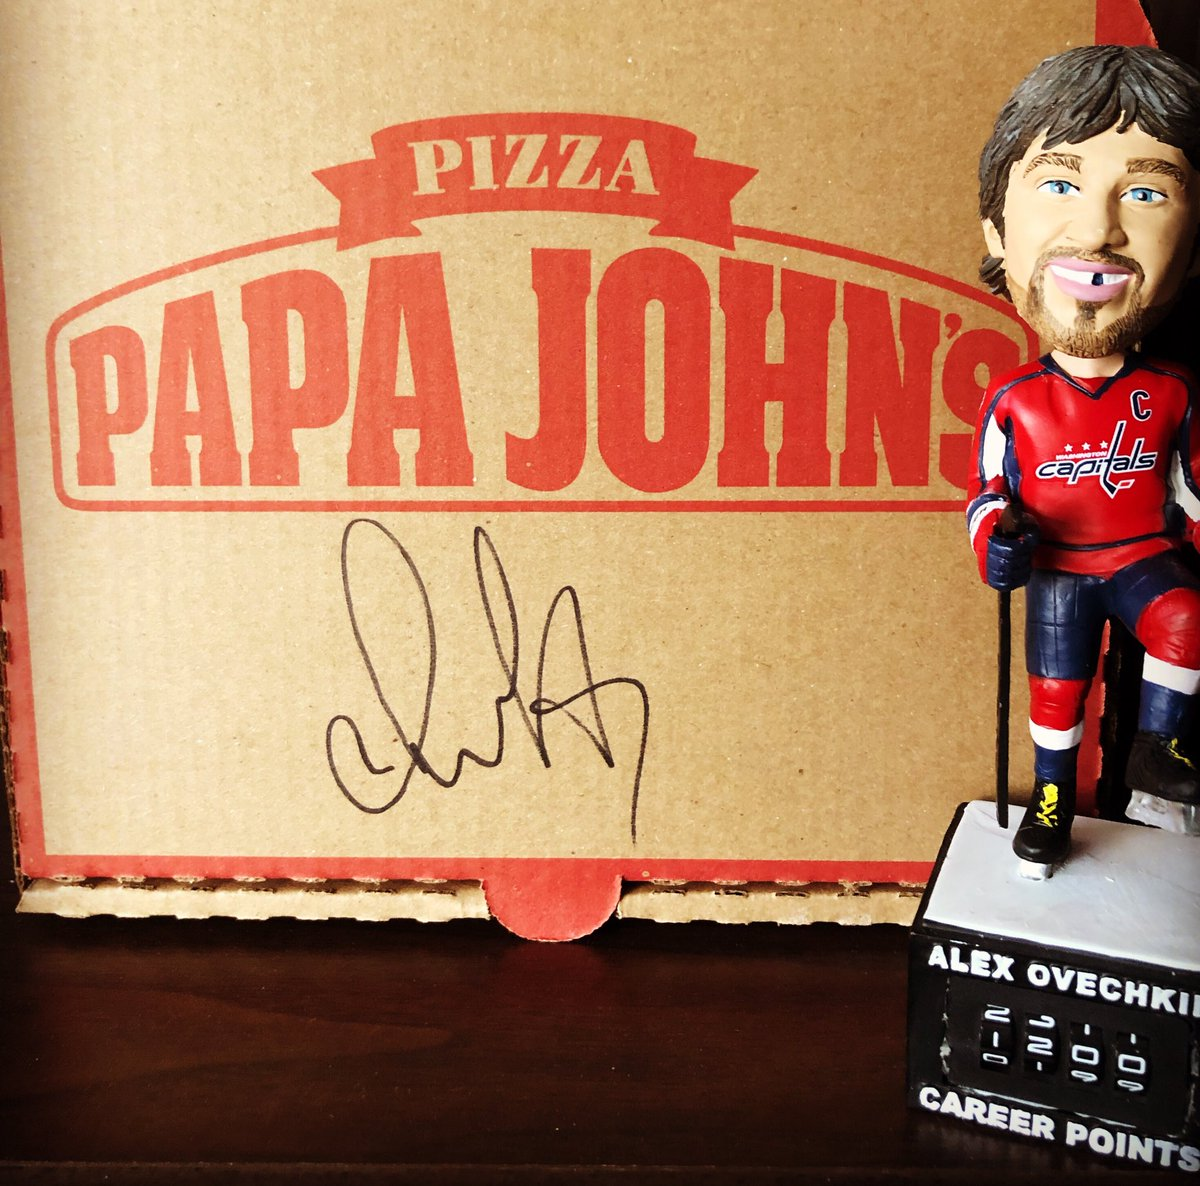 Congratulations to @ovi8 on 1200 career points! We're celebrating with Any Large Specialty Pizza for just $12.00.  RT & Follow for your chance to win this signed Alex Ovechkin pizza box! #PizzasHere🍕 #ALLCAPS  No purch nes, ends 3/18, rules: http://bit.ly/2TObZEK